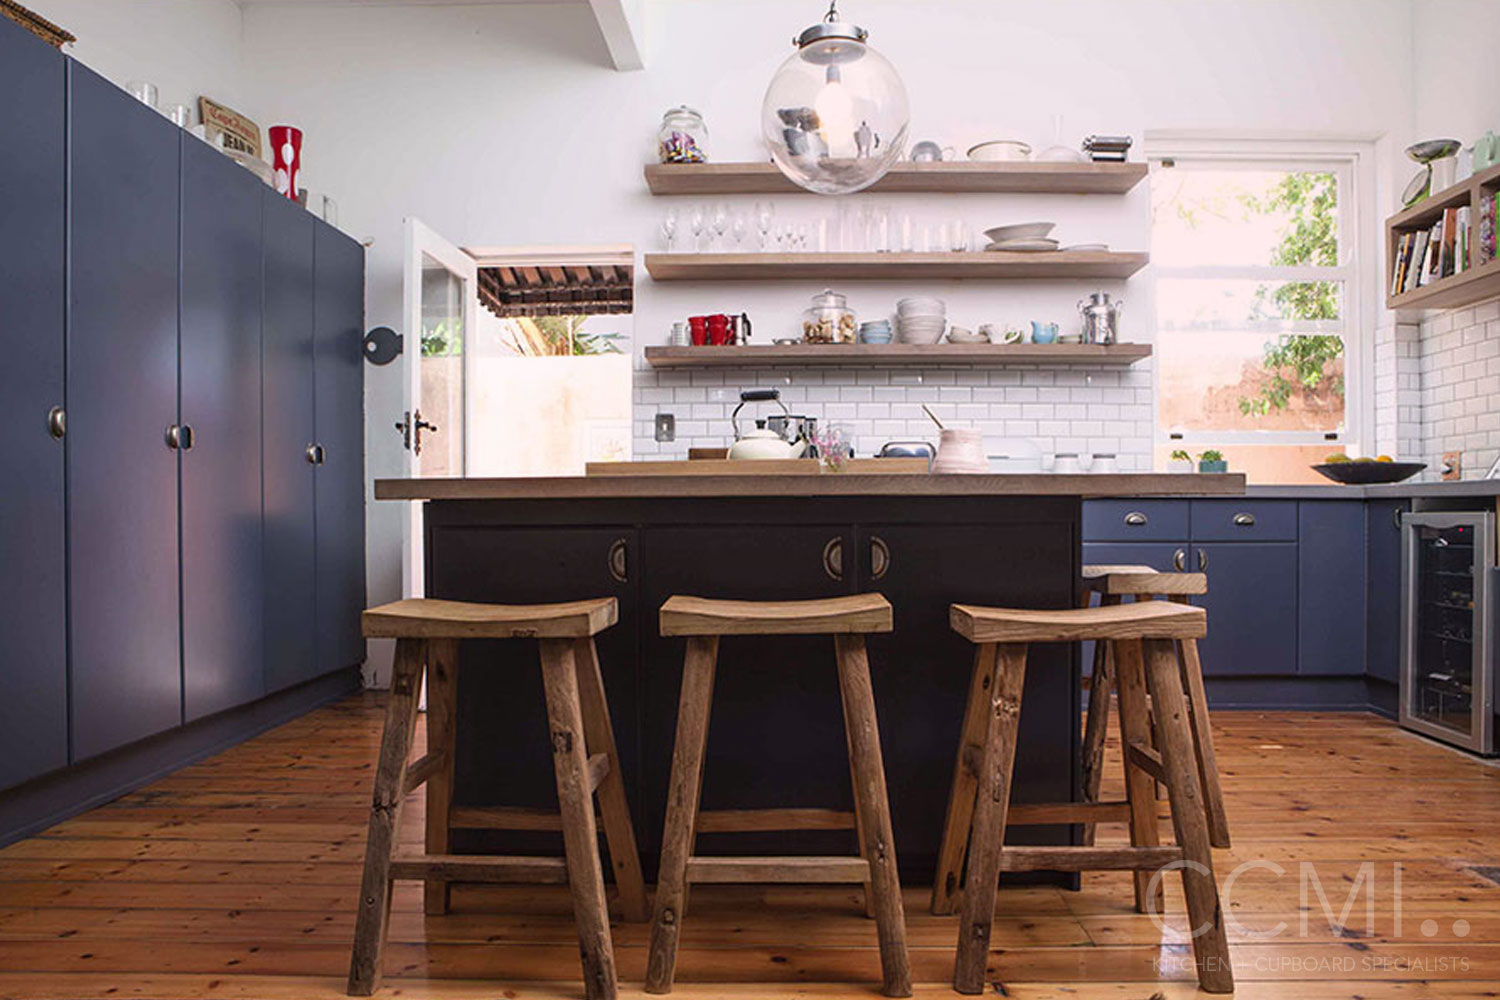 play to the strengths of an older property by furnishing accordingly, rustic stools work well here